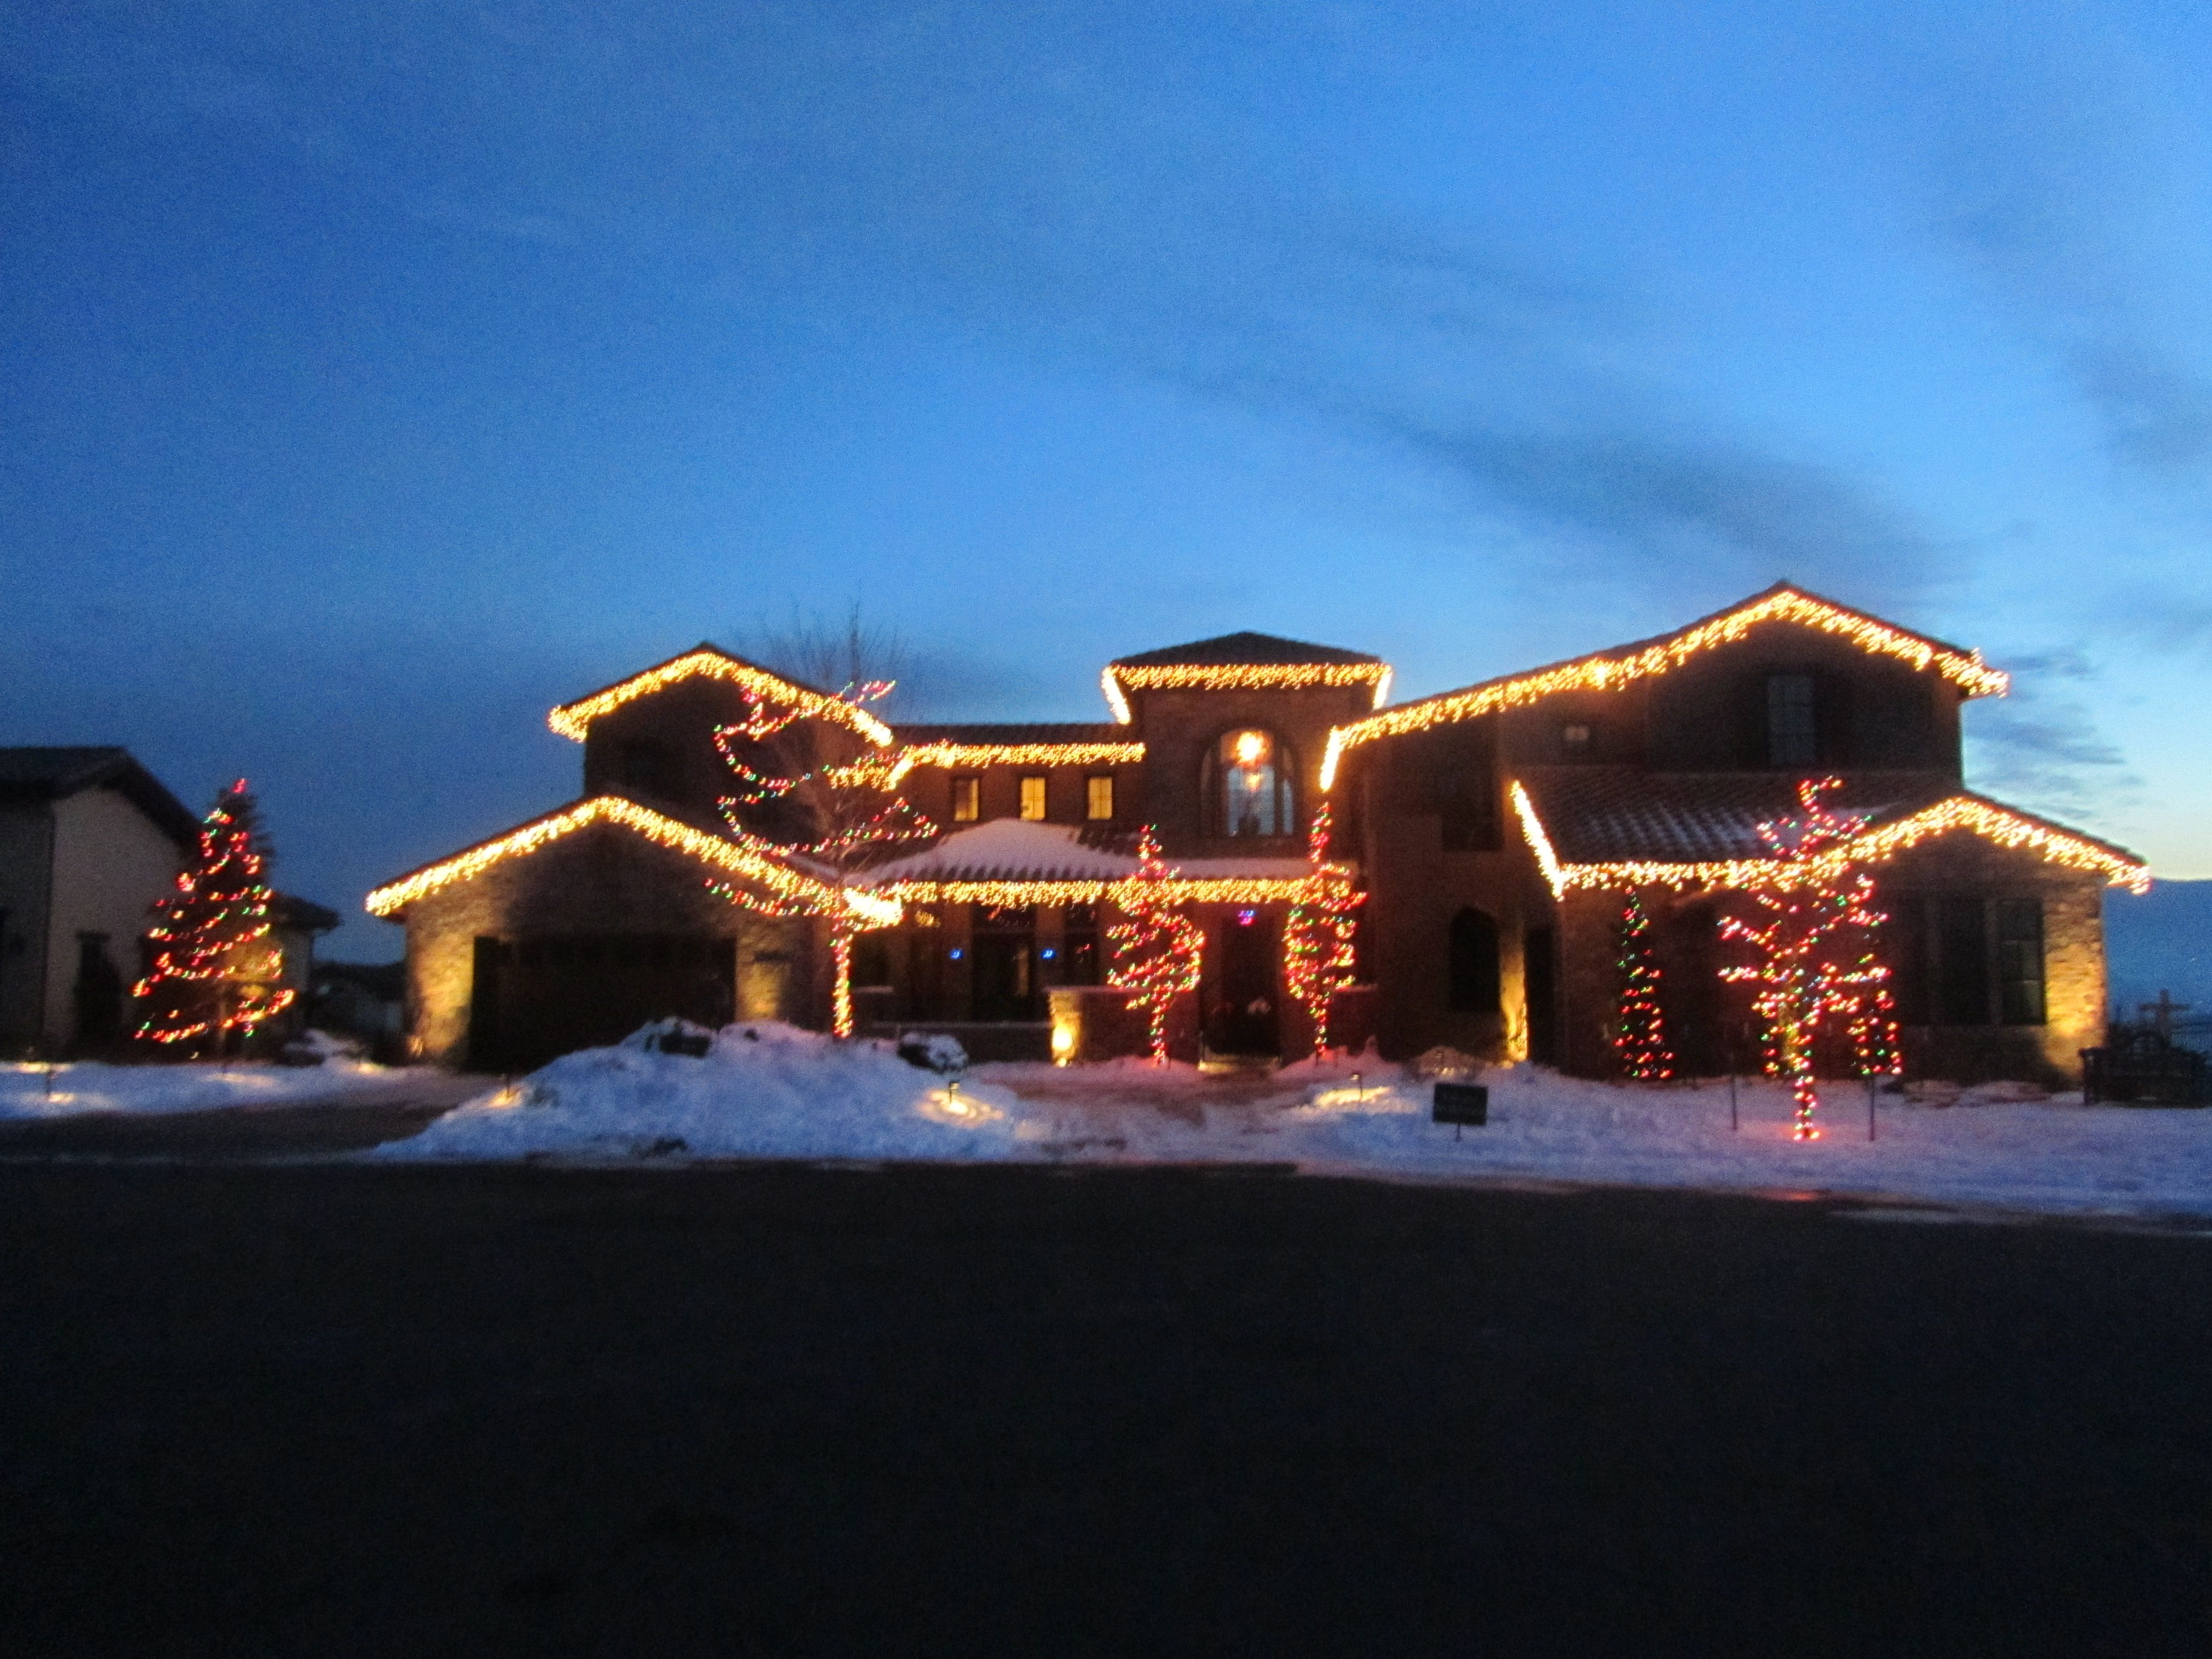 Lakewood, CO Residential Decor and Tree Lighting //**\\ We